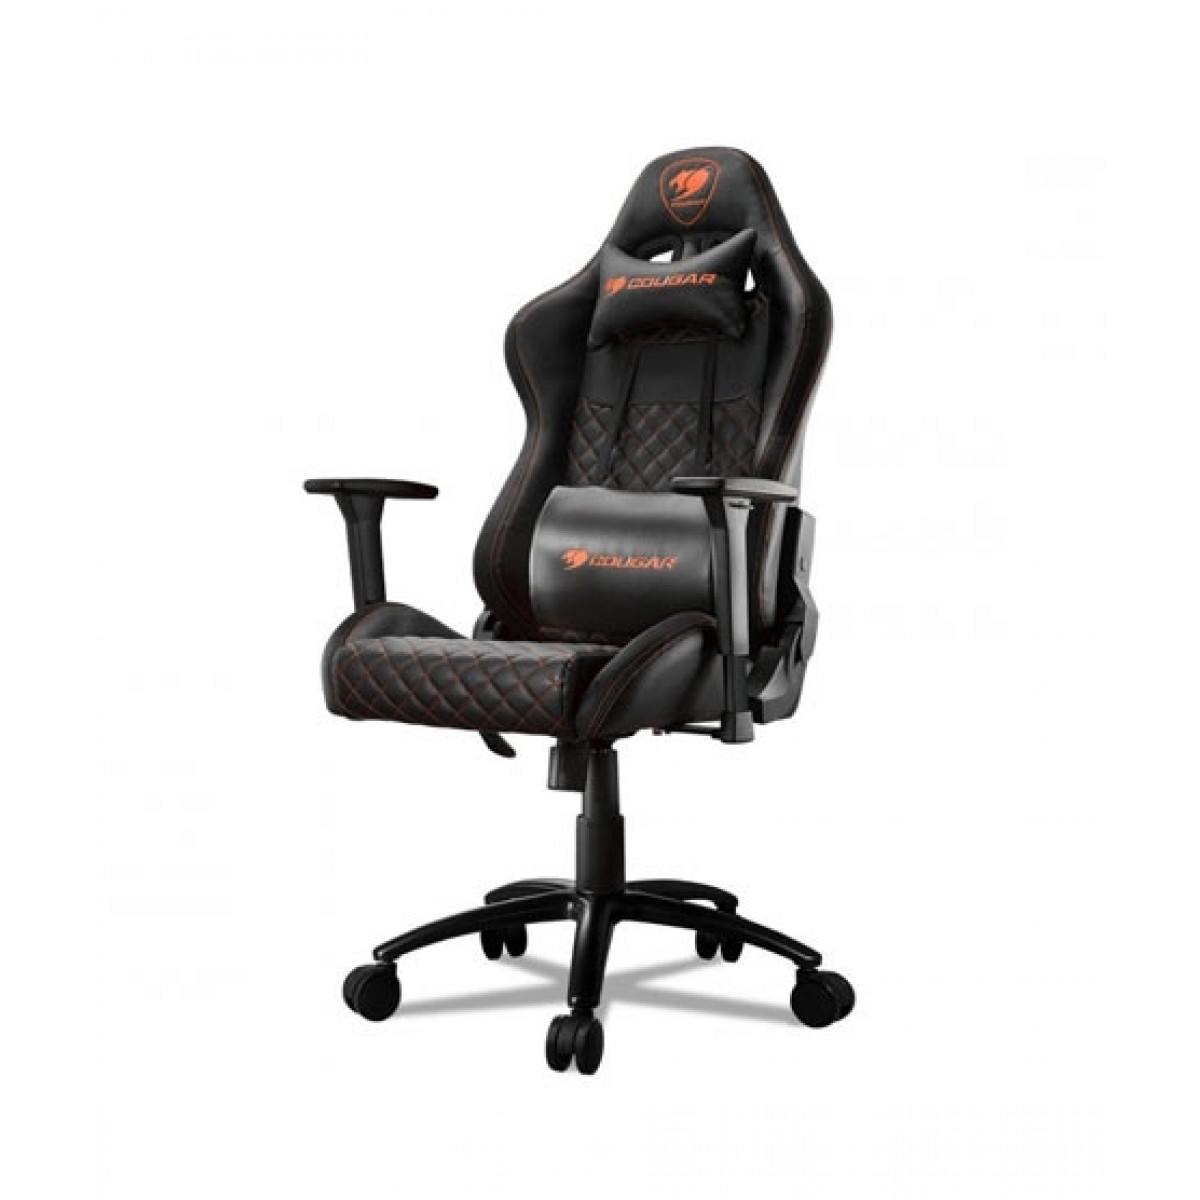 Cougar Armor Pro Gaming Chair Black